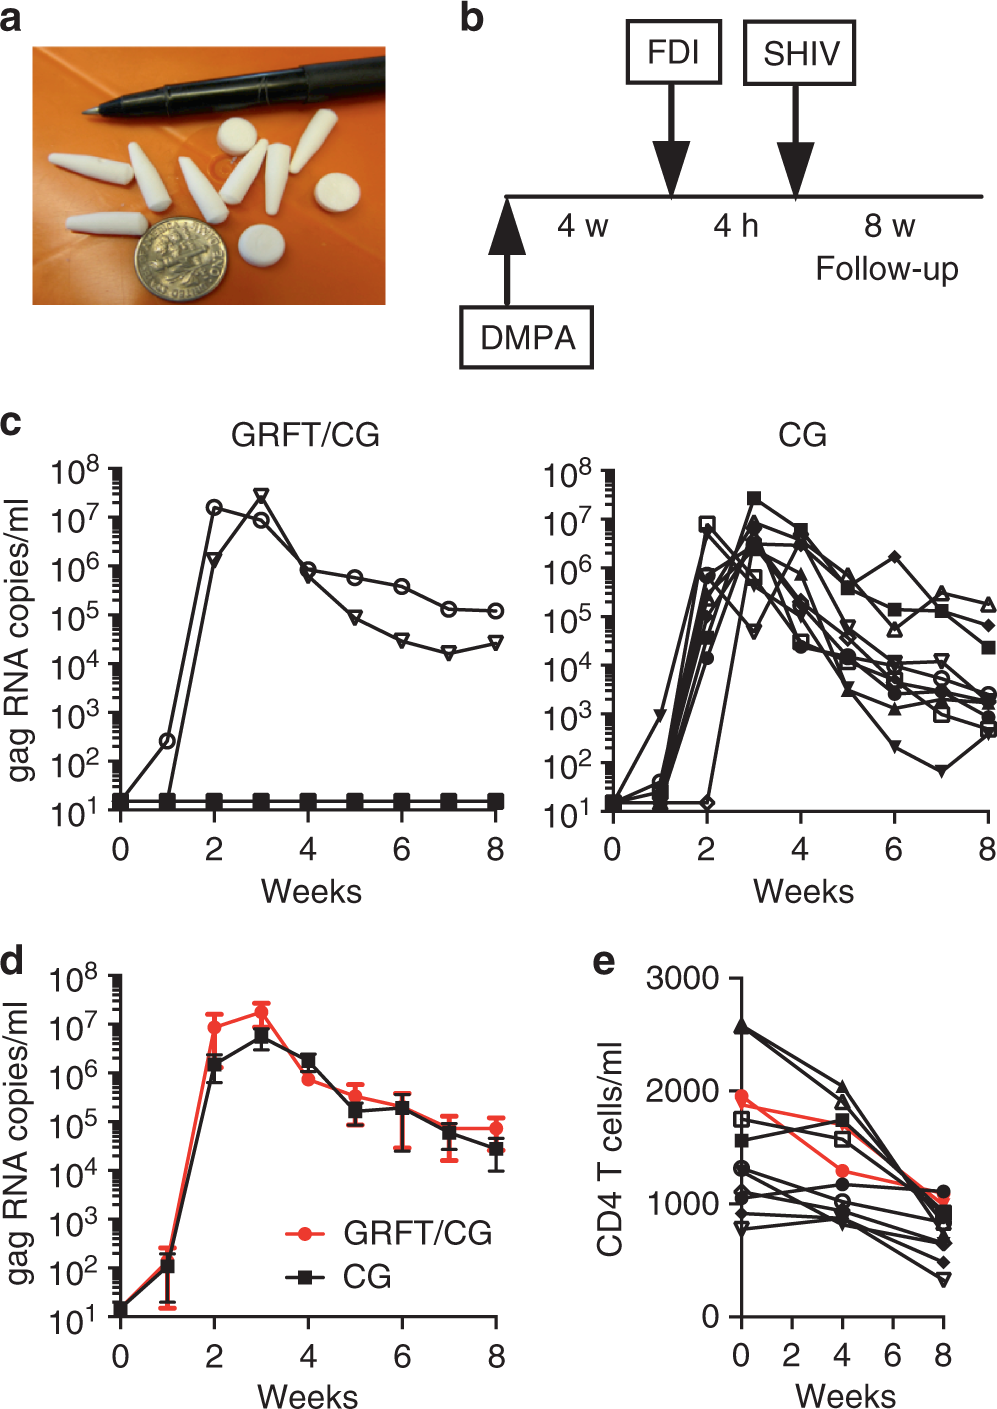 Griffithsin Carrageenan Fast Dissolving Inserts Prevent Shiv Hsv 2 Diagram Shows Options For A Diamond Interchange Including 3 And 4 Hpv Infections In Vivo Nature Communications